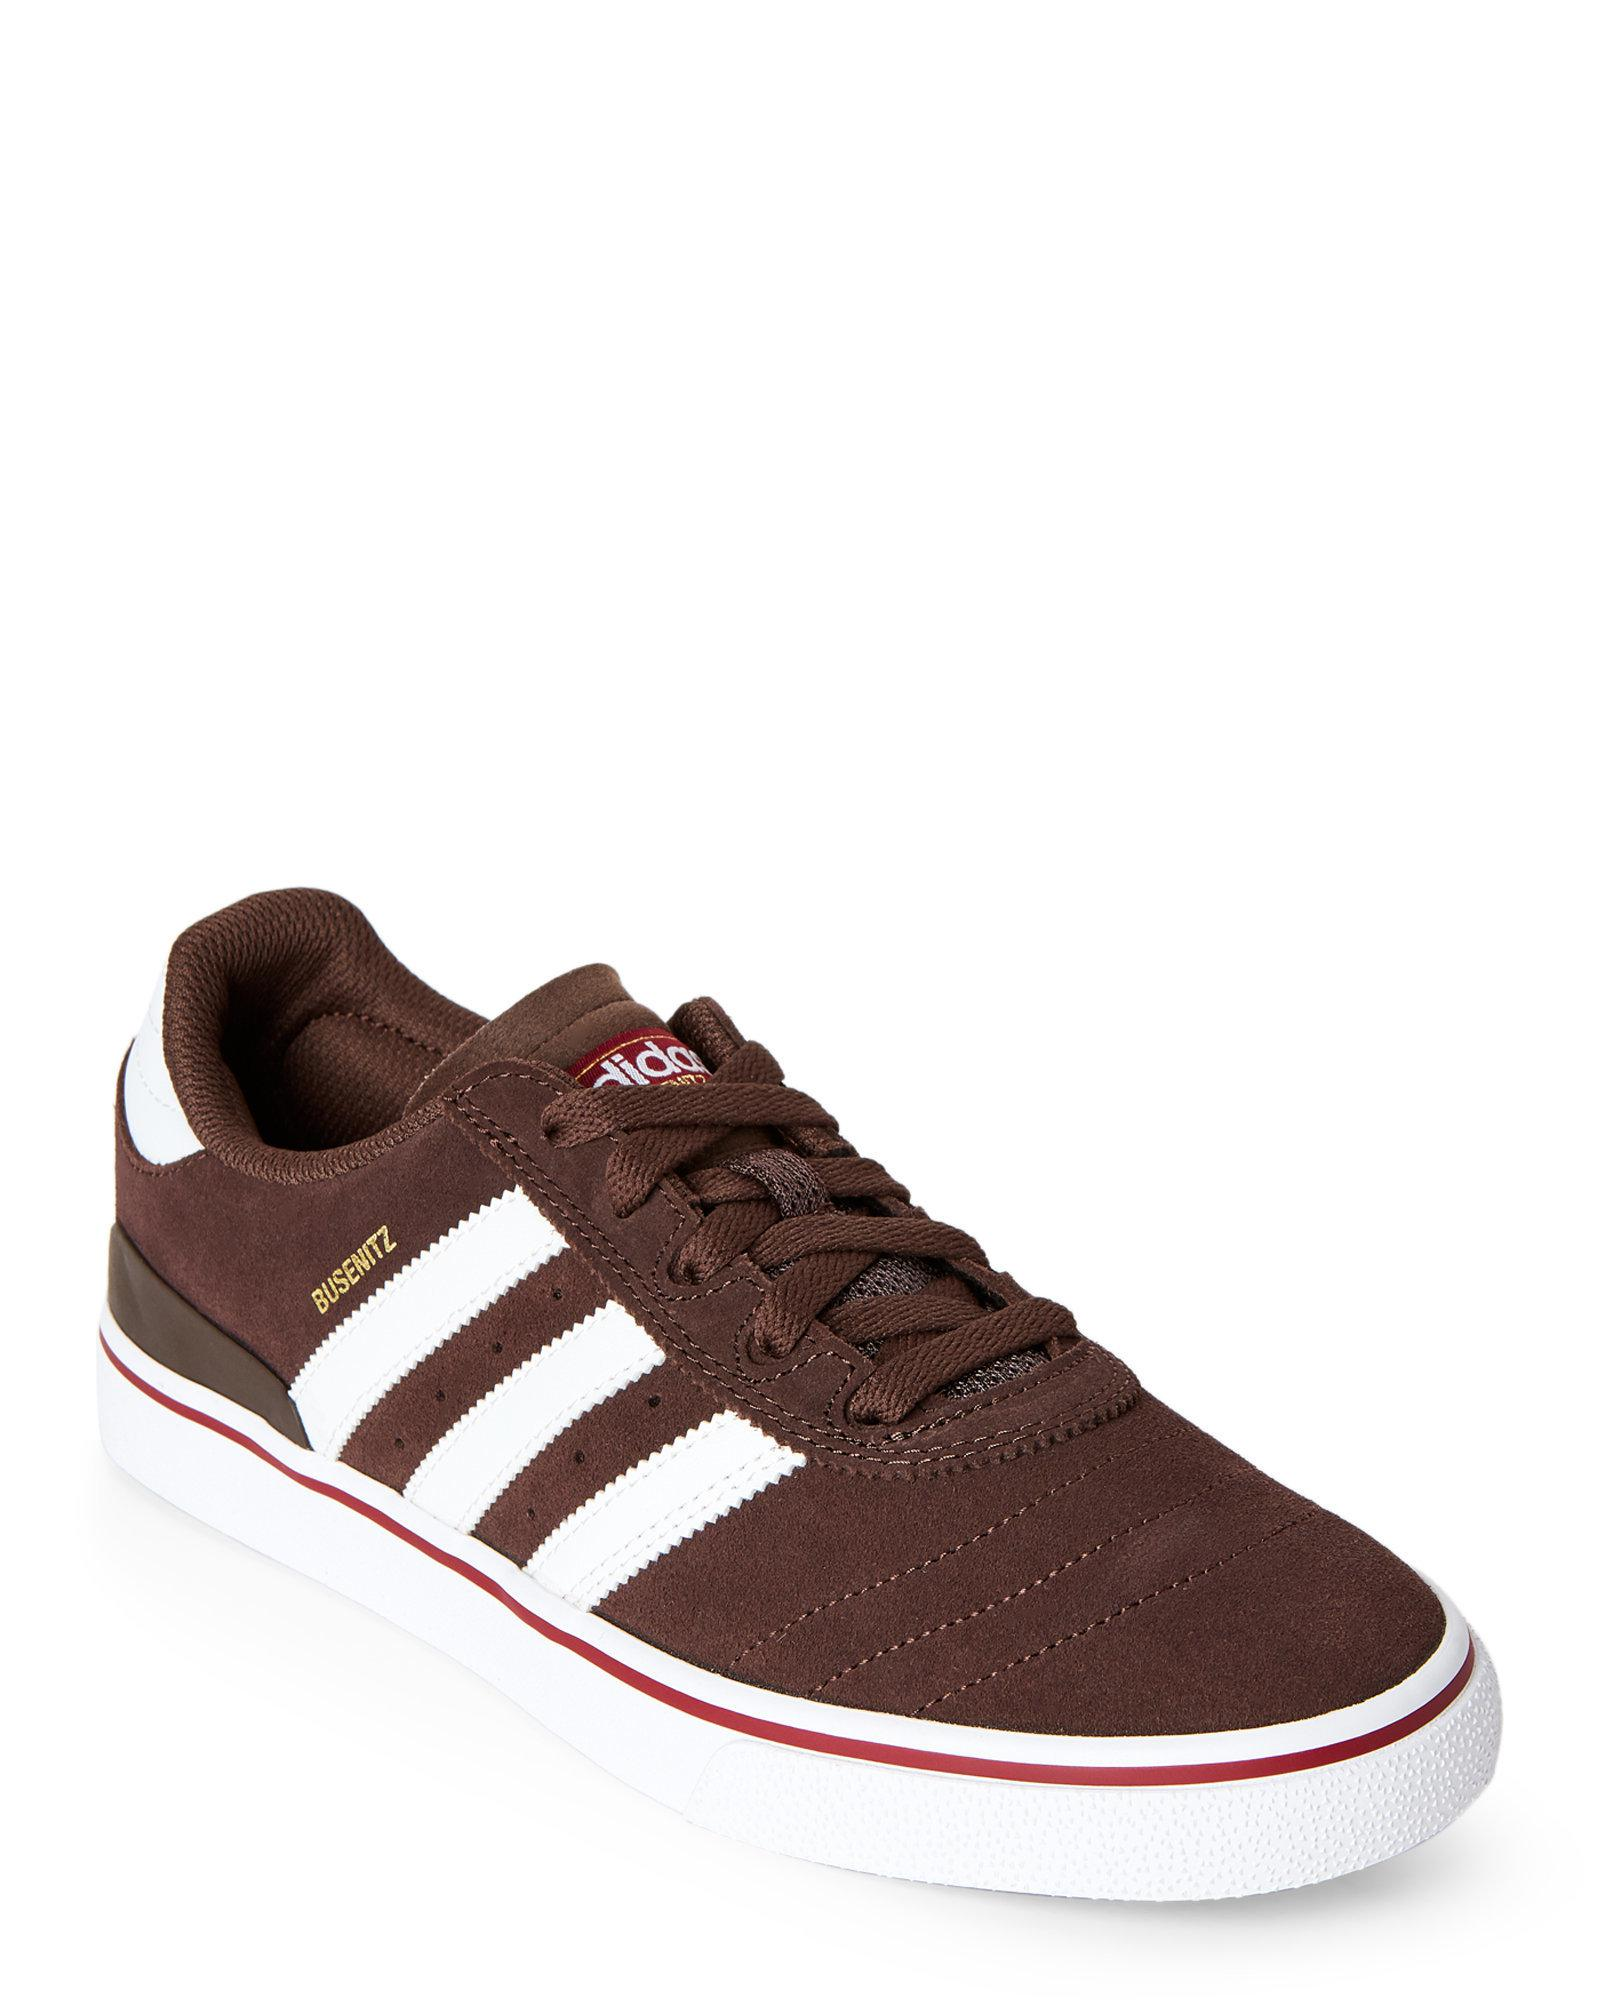 1856237d1bc Lyst - adidas Brown   White Busenitz Vulc Adv Sneakers in Brown for Men